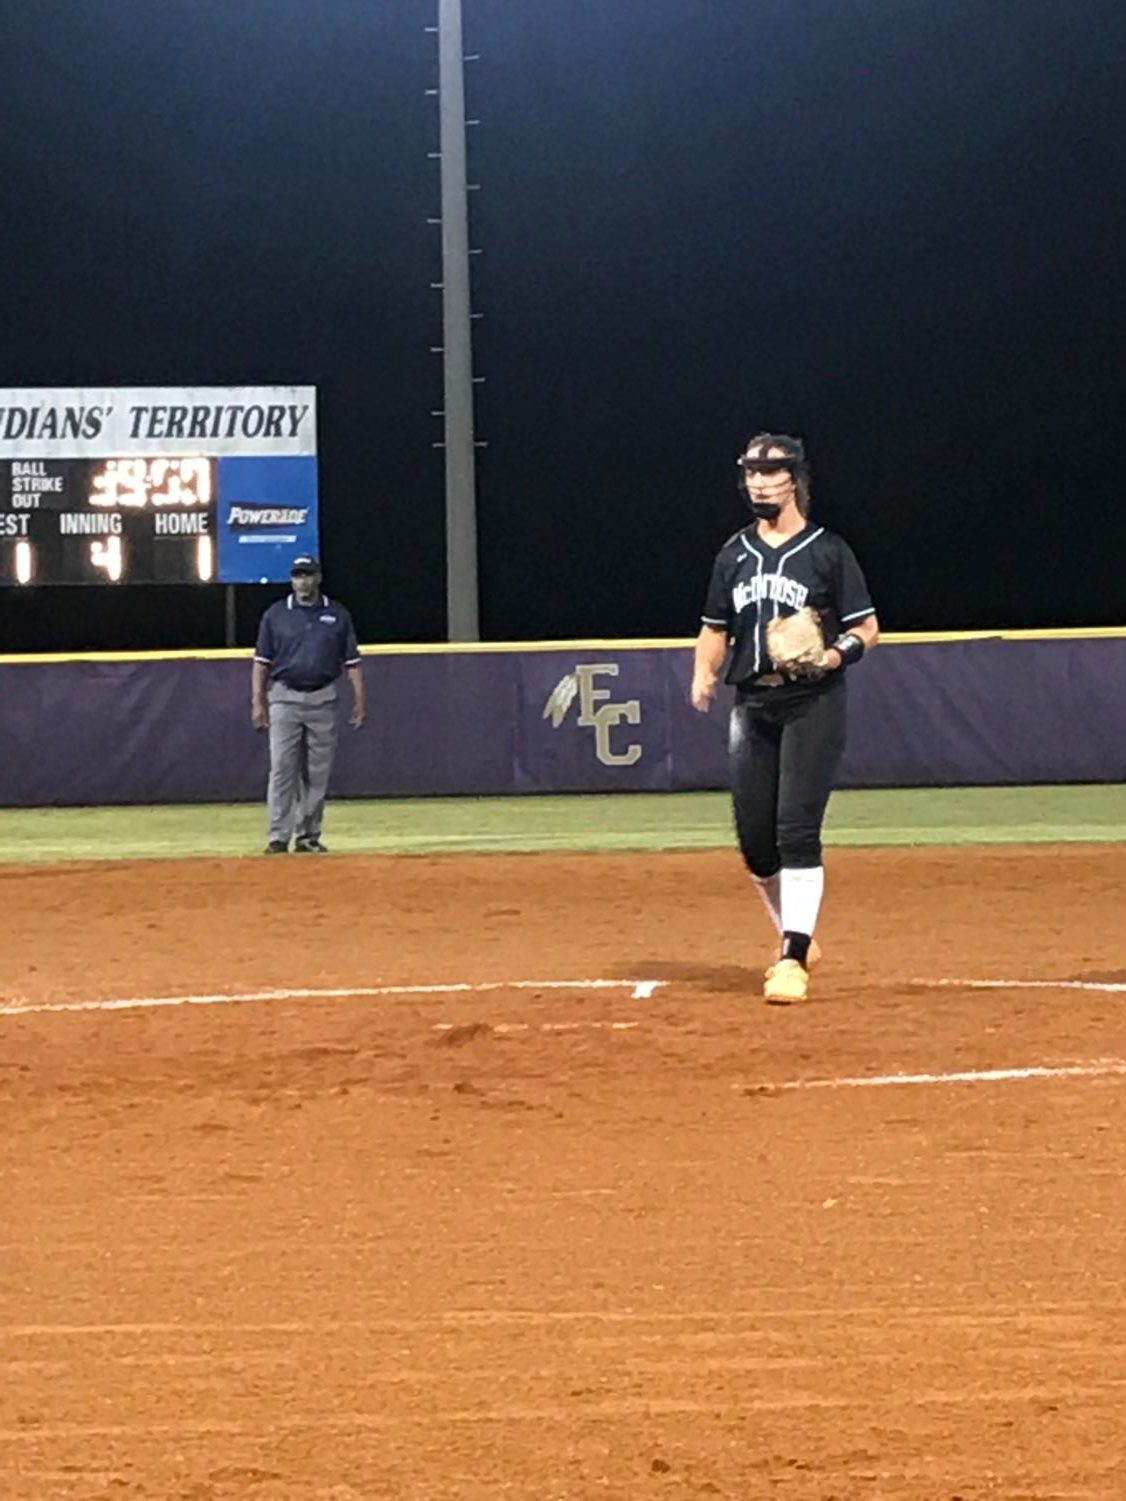 Sophomore Rebecca Muh pitches at an East Coweta tournament. The team finished 0-3 in the tournament, but Muh added up more strike outs on her record for the season. Muh said,